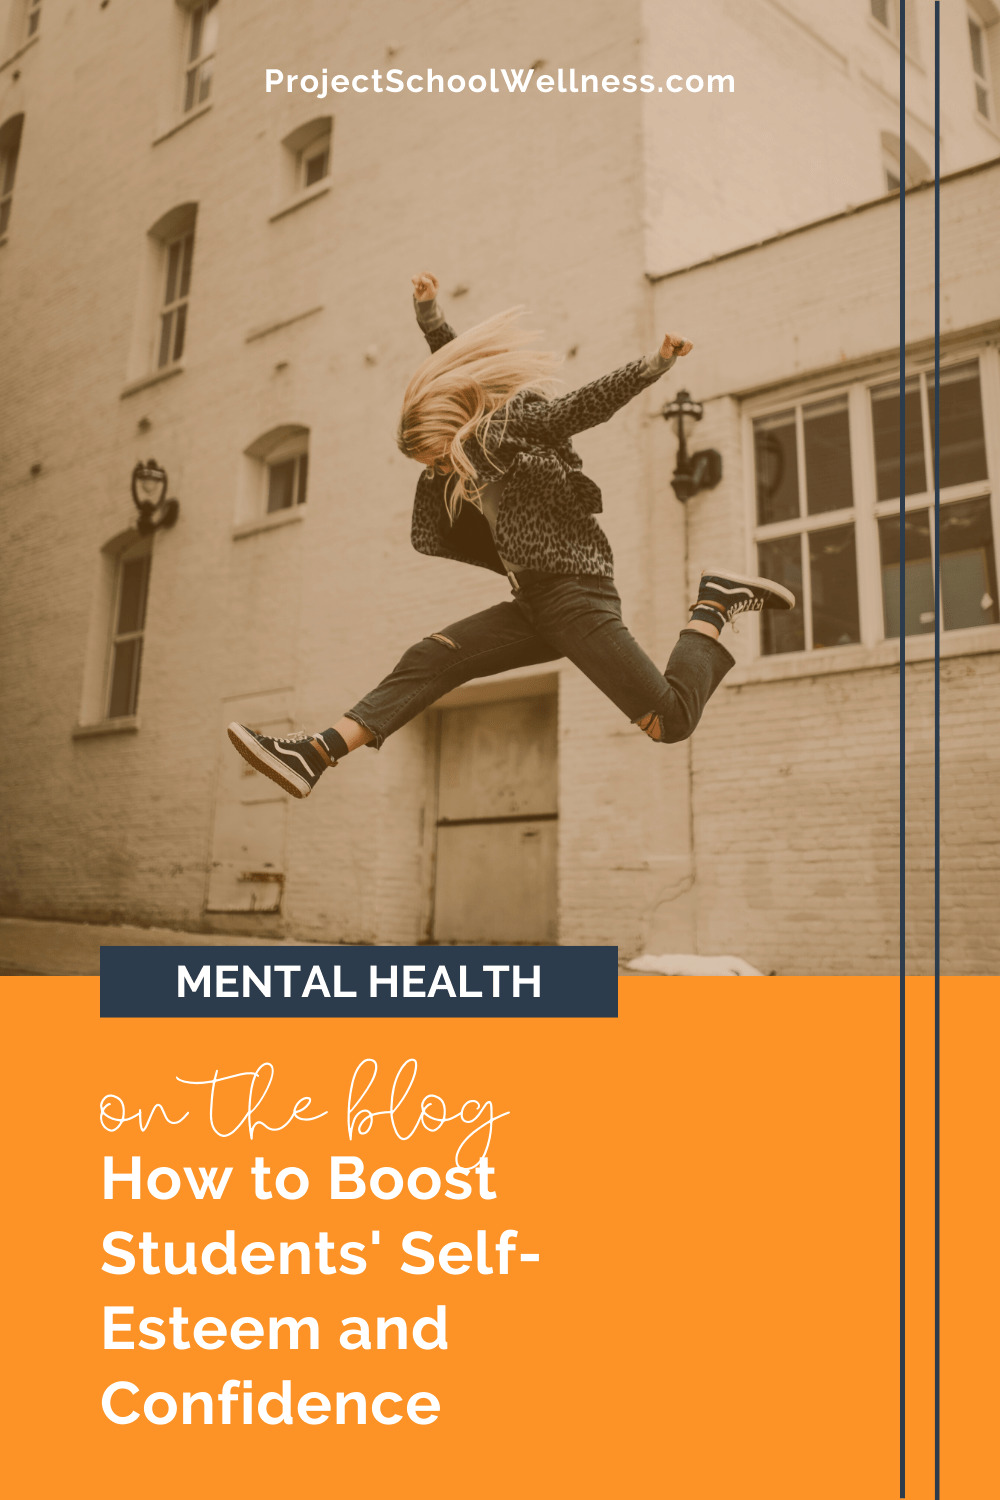 Mental Health Education Tips - How to boost students' self-esteem and self-confidence - Project School Wellness, Health Education Lesson Plans and Resources